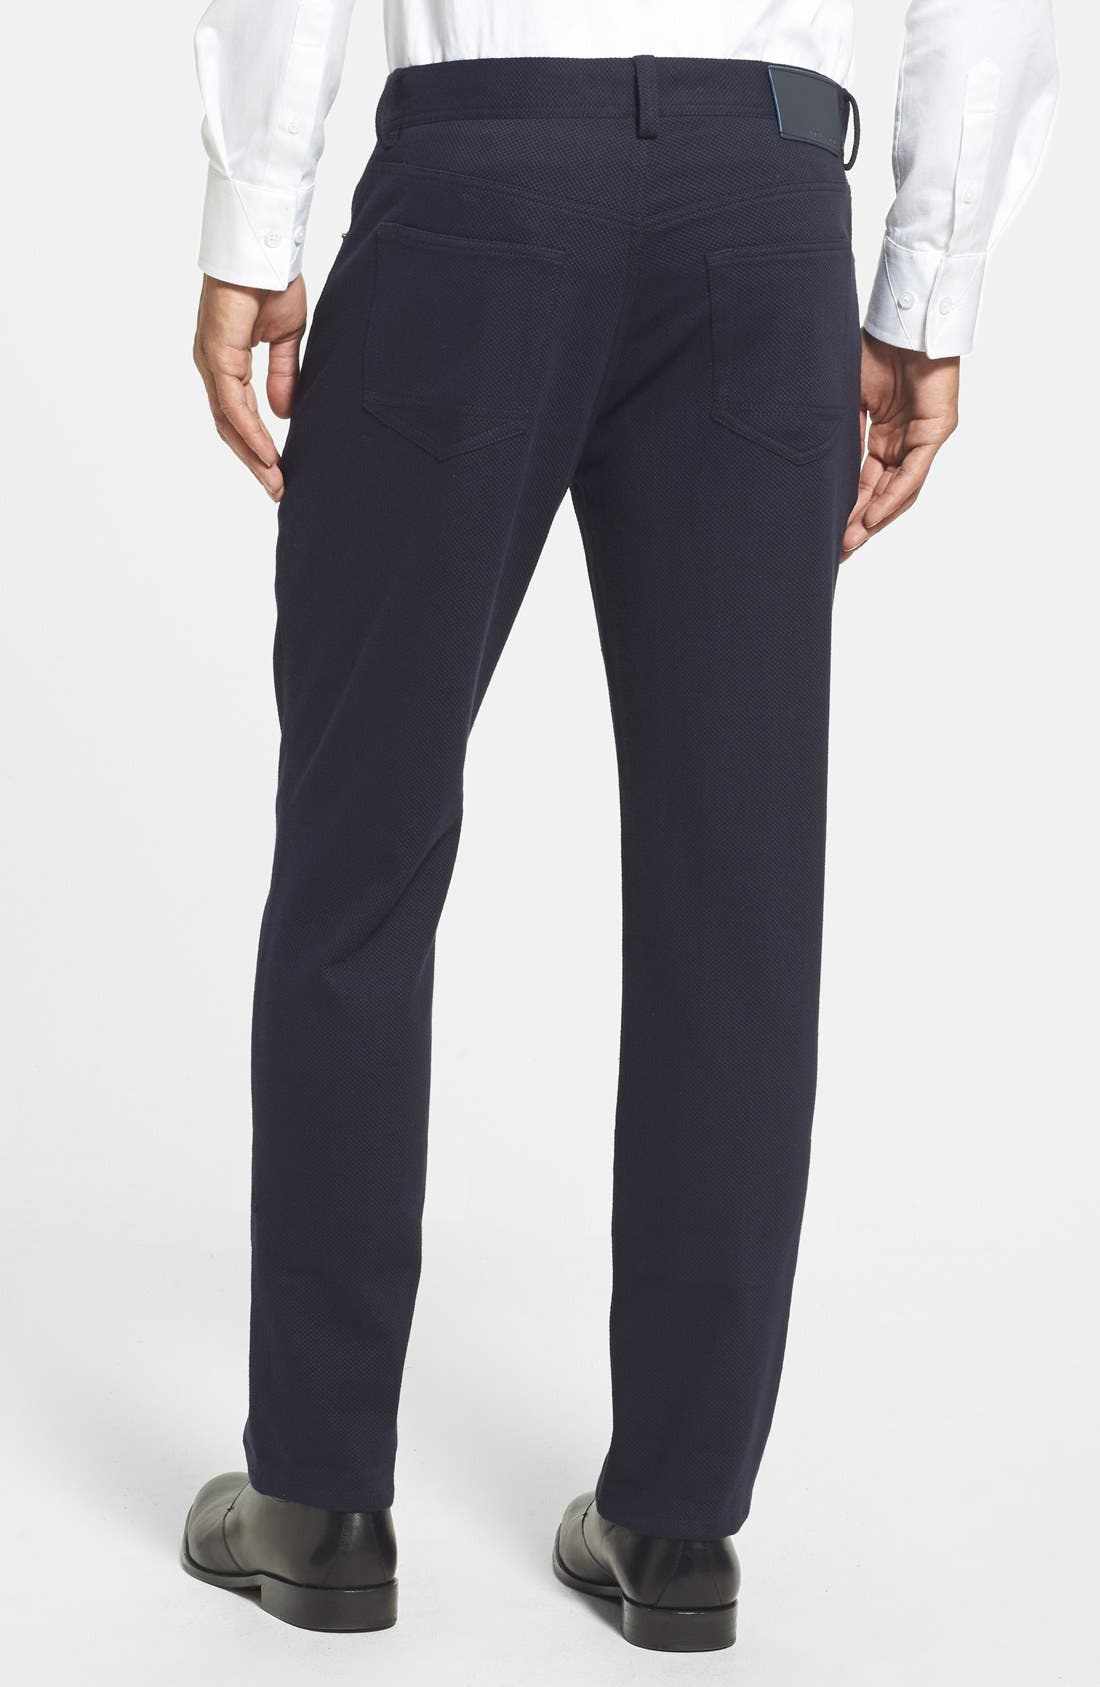 Straight Leg Five Pocket Stretch Pants,                             Alternate thumbnail 2, color,                             Black Crosshatch